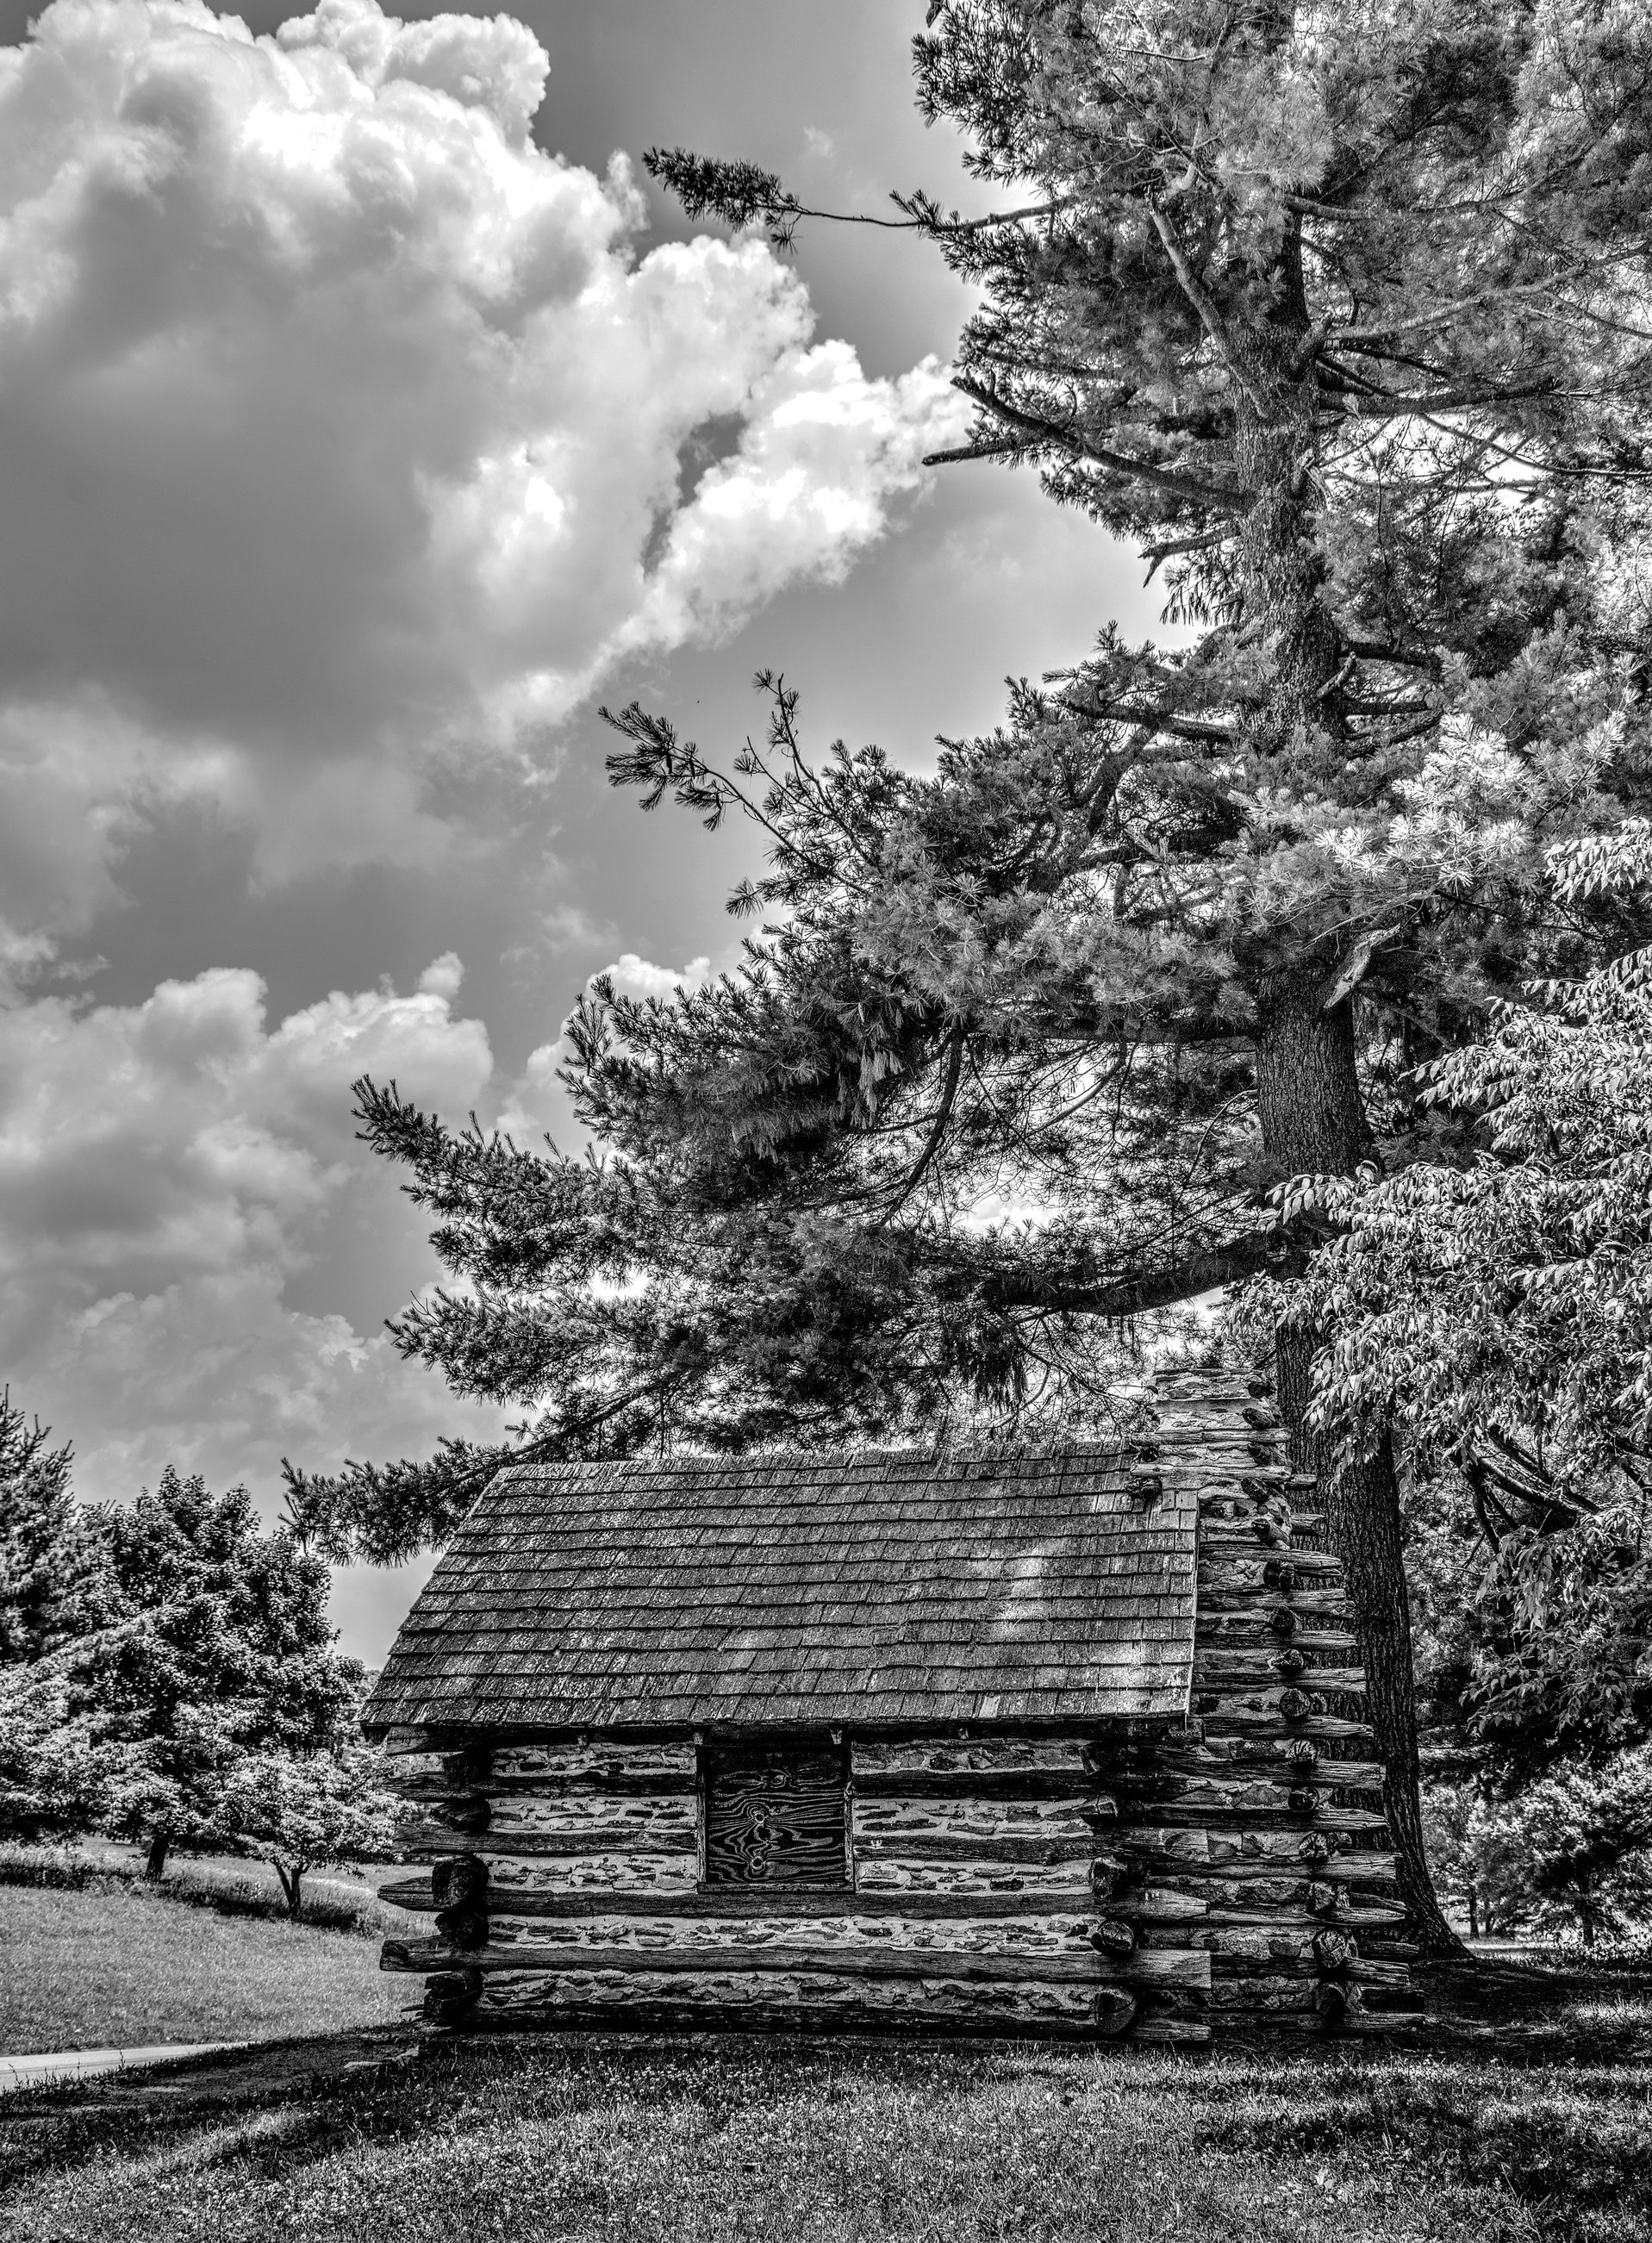 rsz_2cabin_under_tree_01